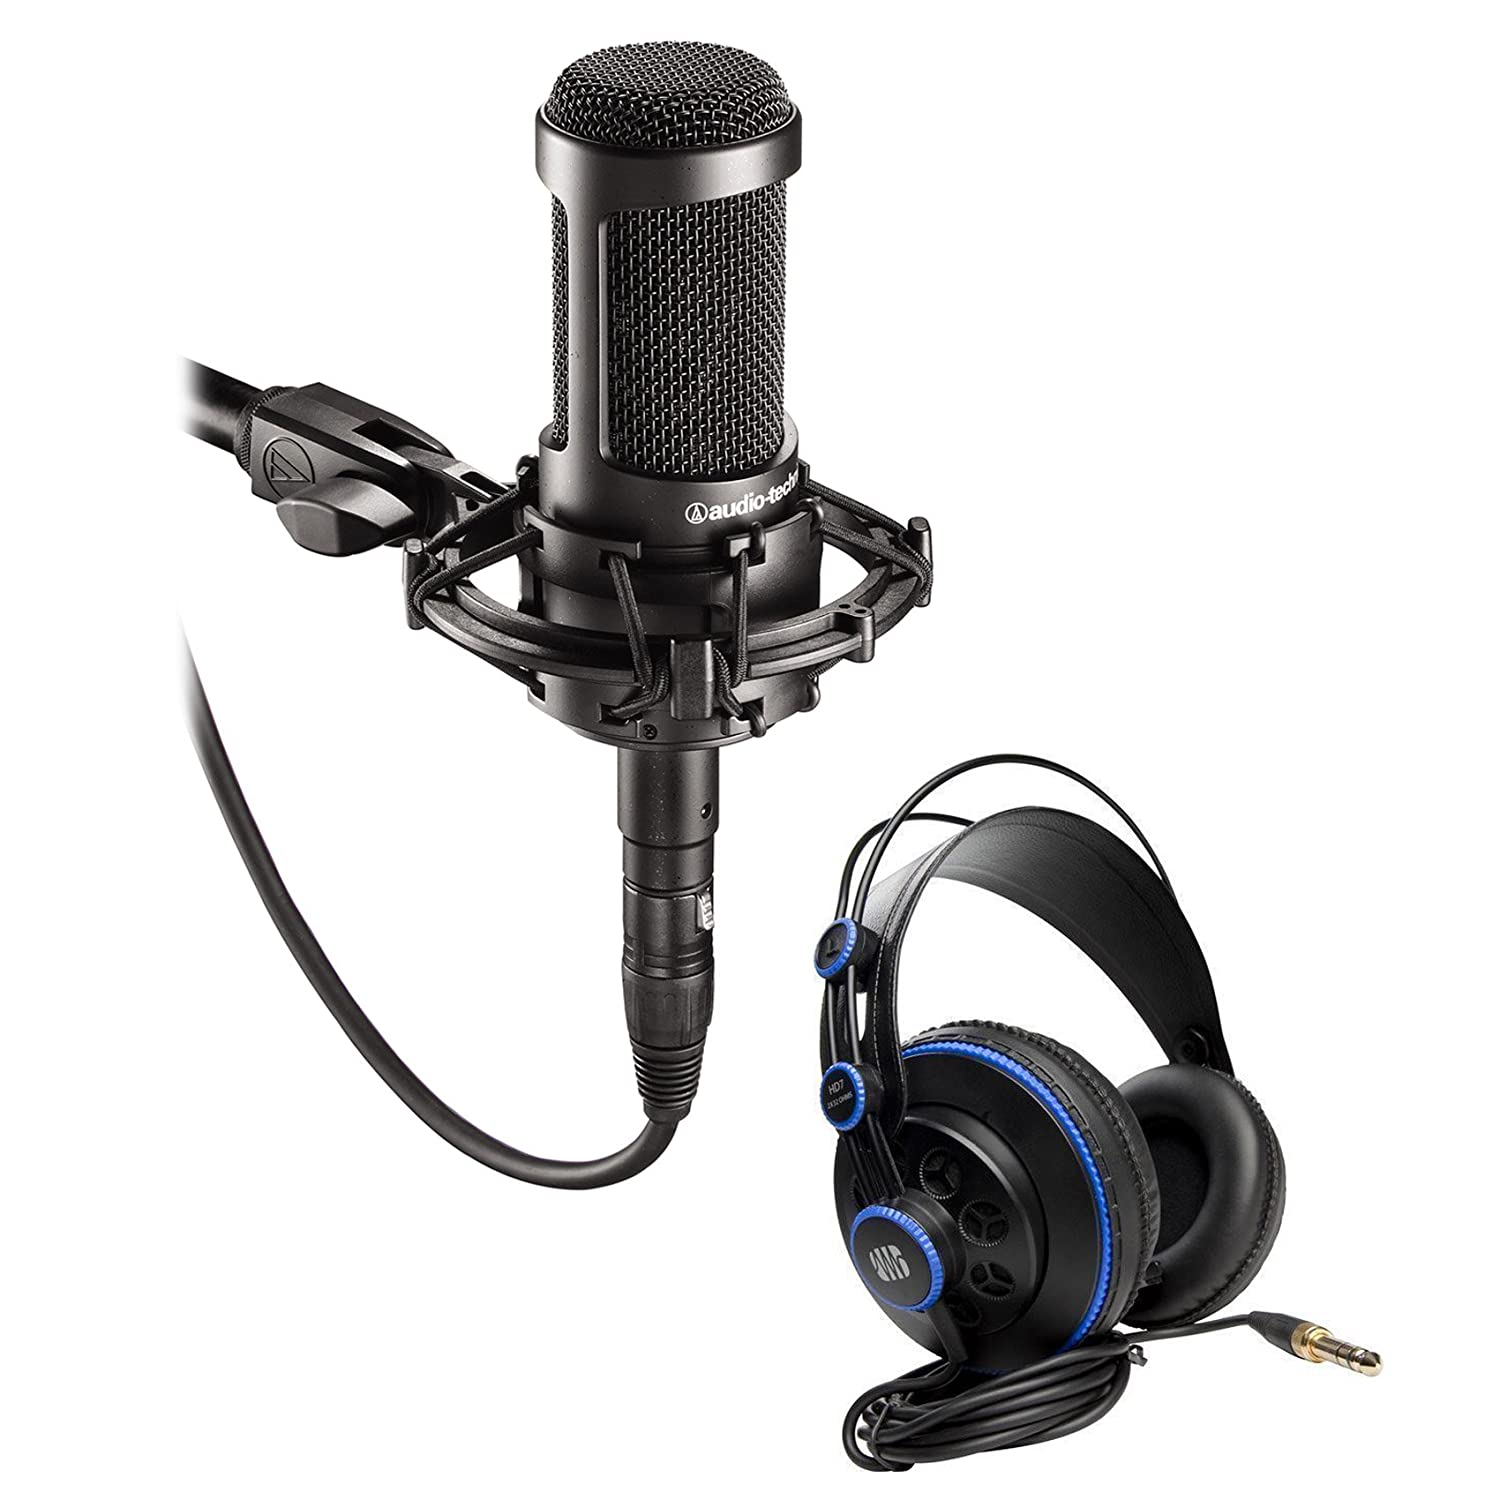 Audio Technica AT2035 Side Address Condenser Studio Microphone+Case+Headphones AT2035+HD7